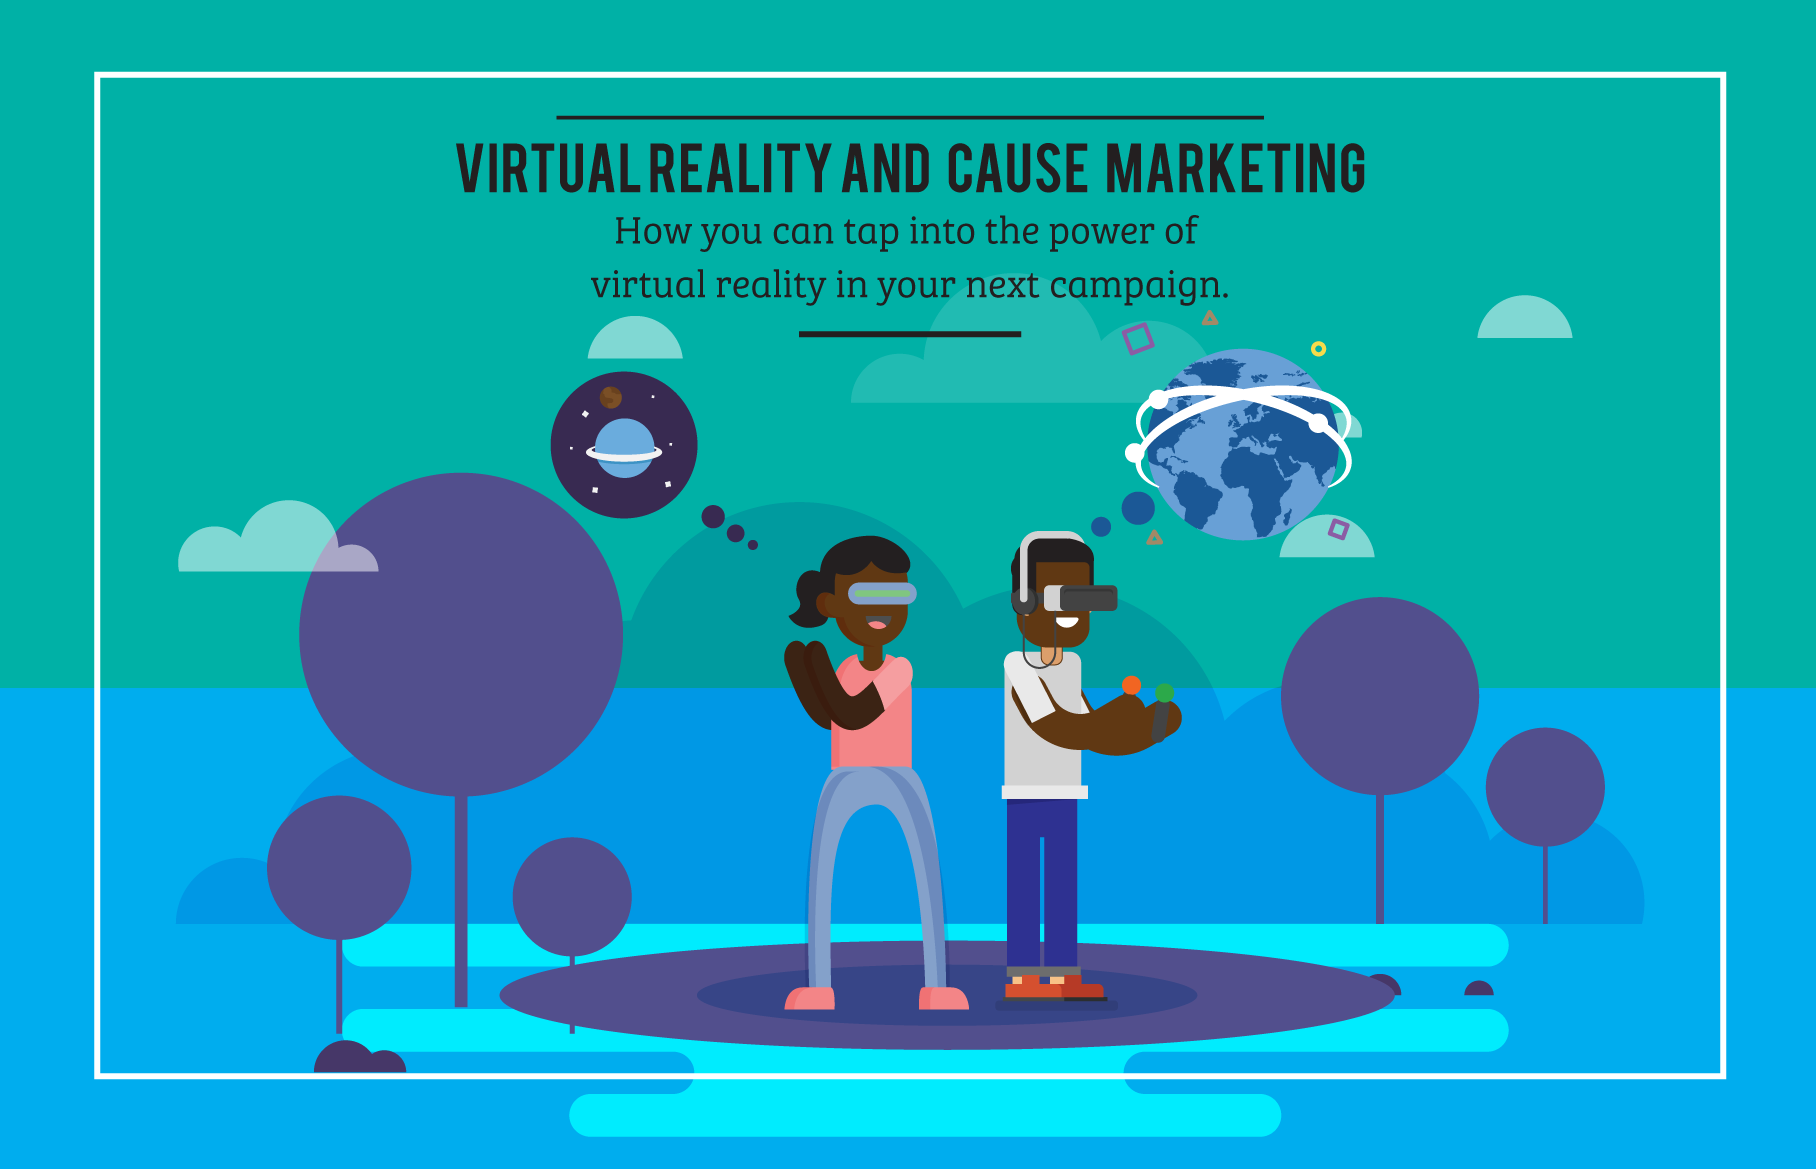 Virtual Reality and Cause Marketing.